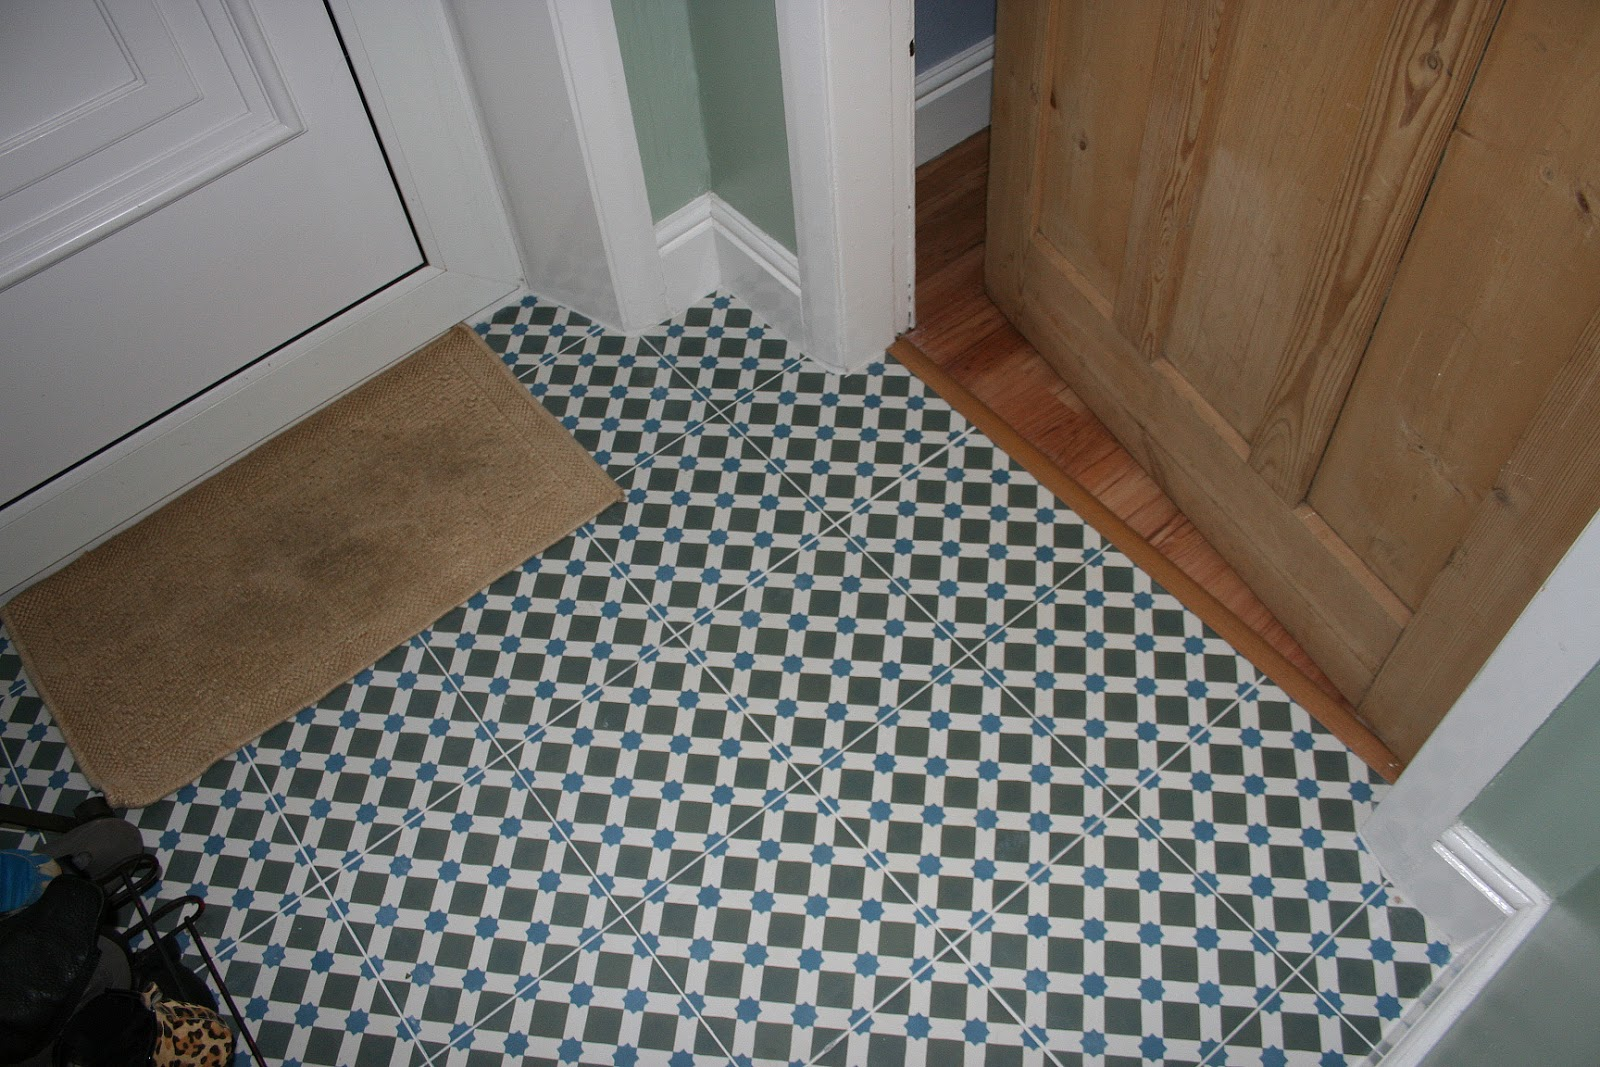 Made good things in my home new floor tiles things in my home new floor tiles dailygadgetfo Choice Image